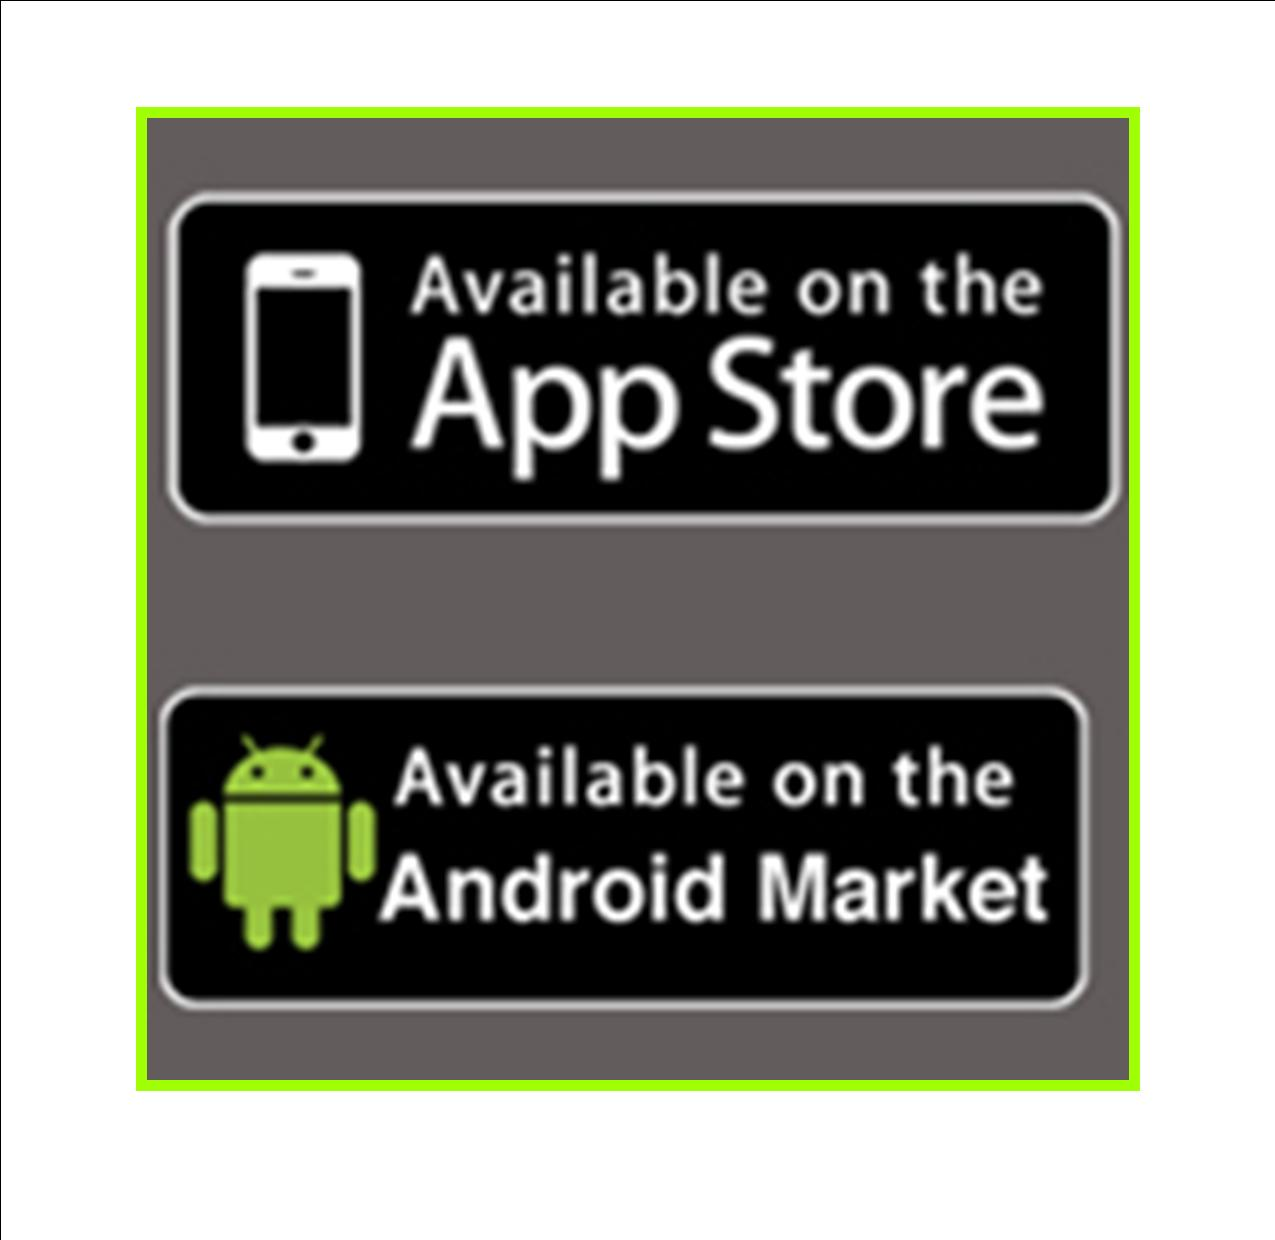 Android Markets